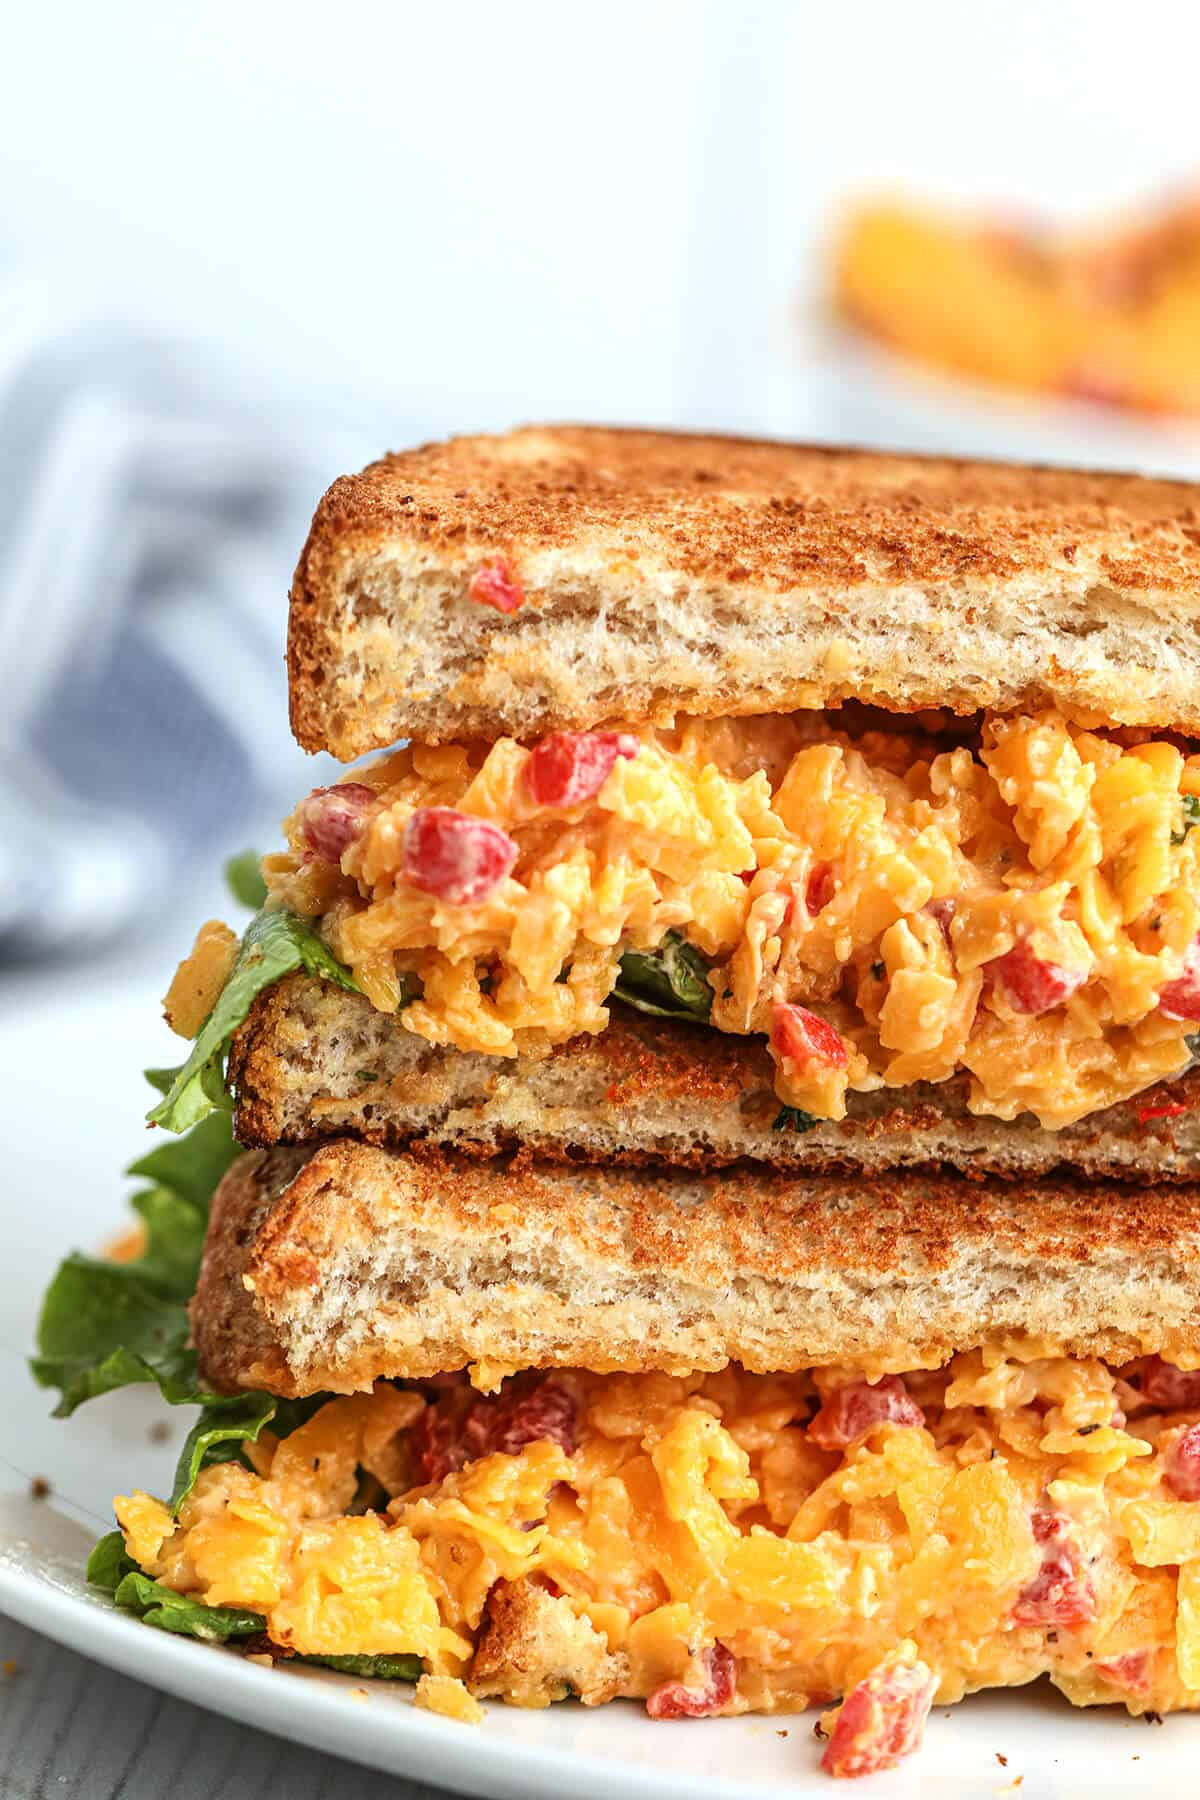 Pimiento cheese sandwich on a white plate.